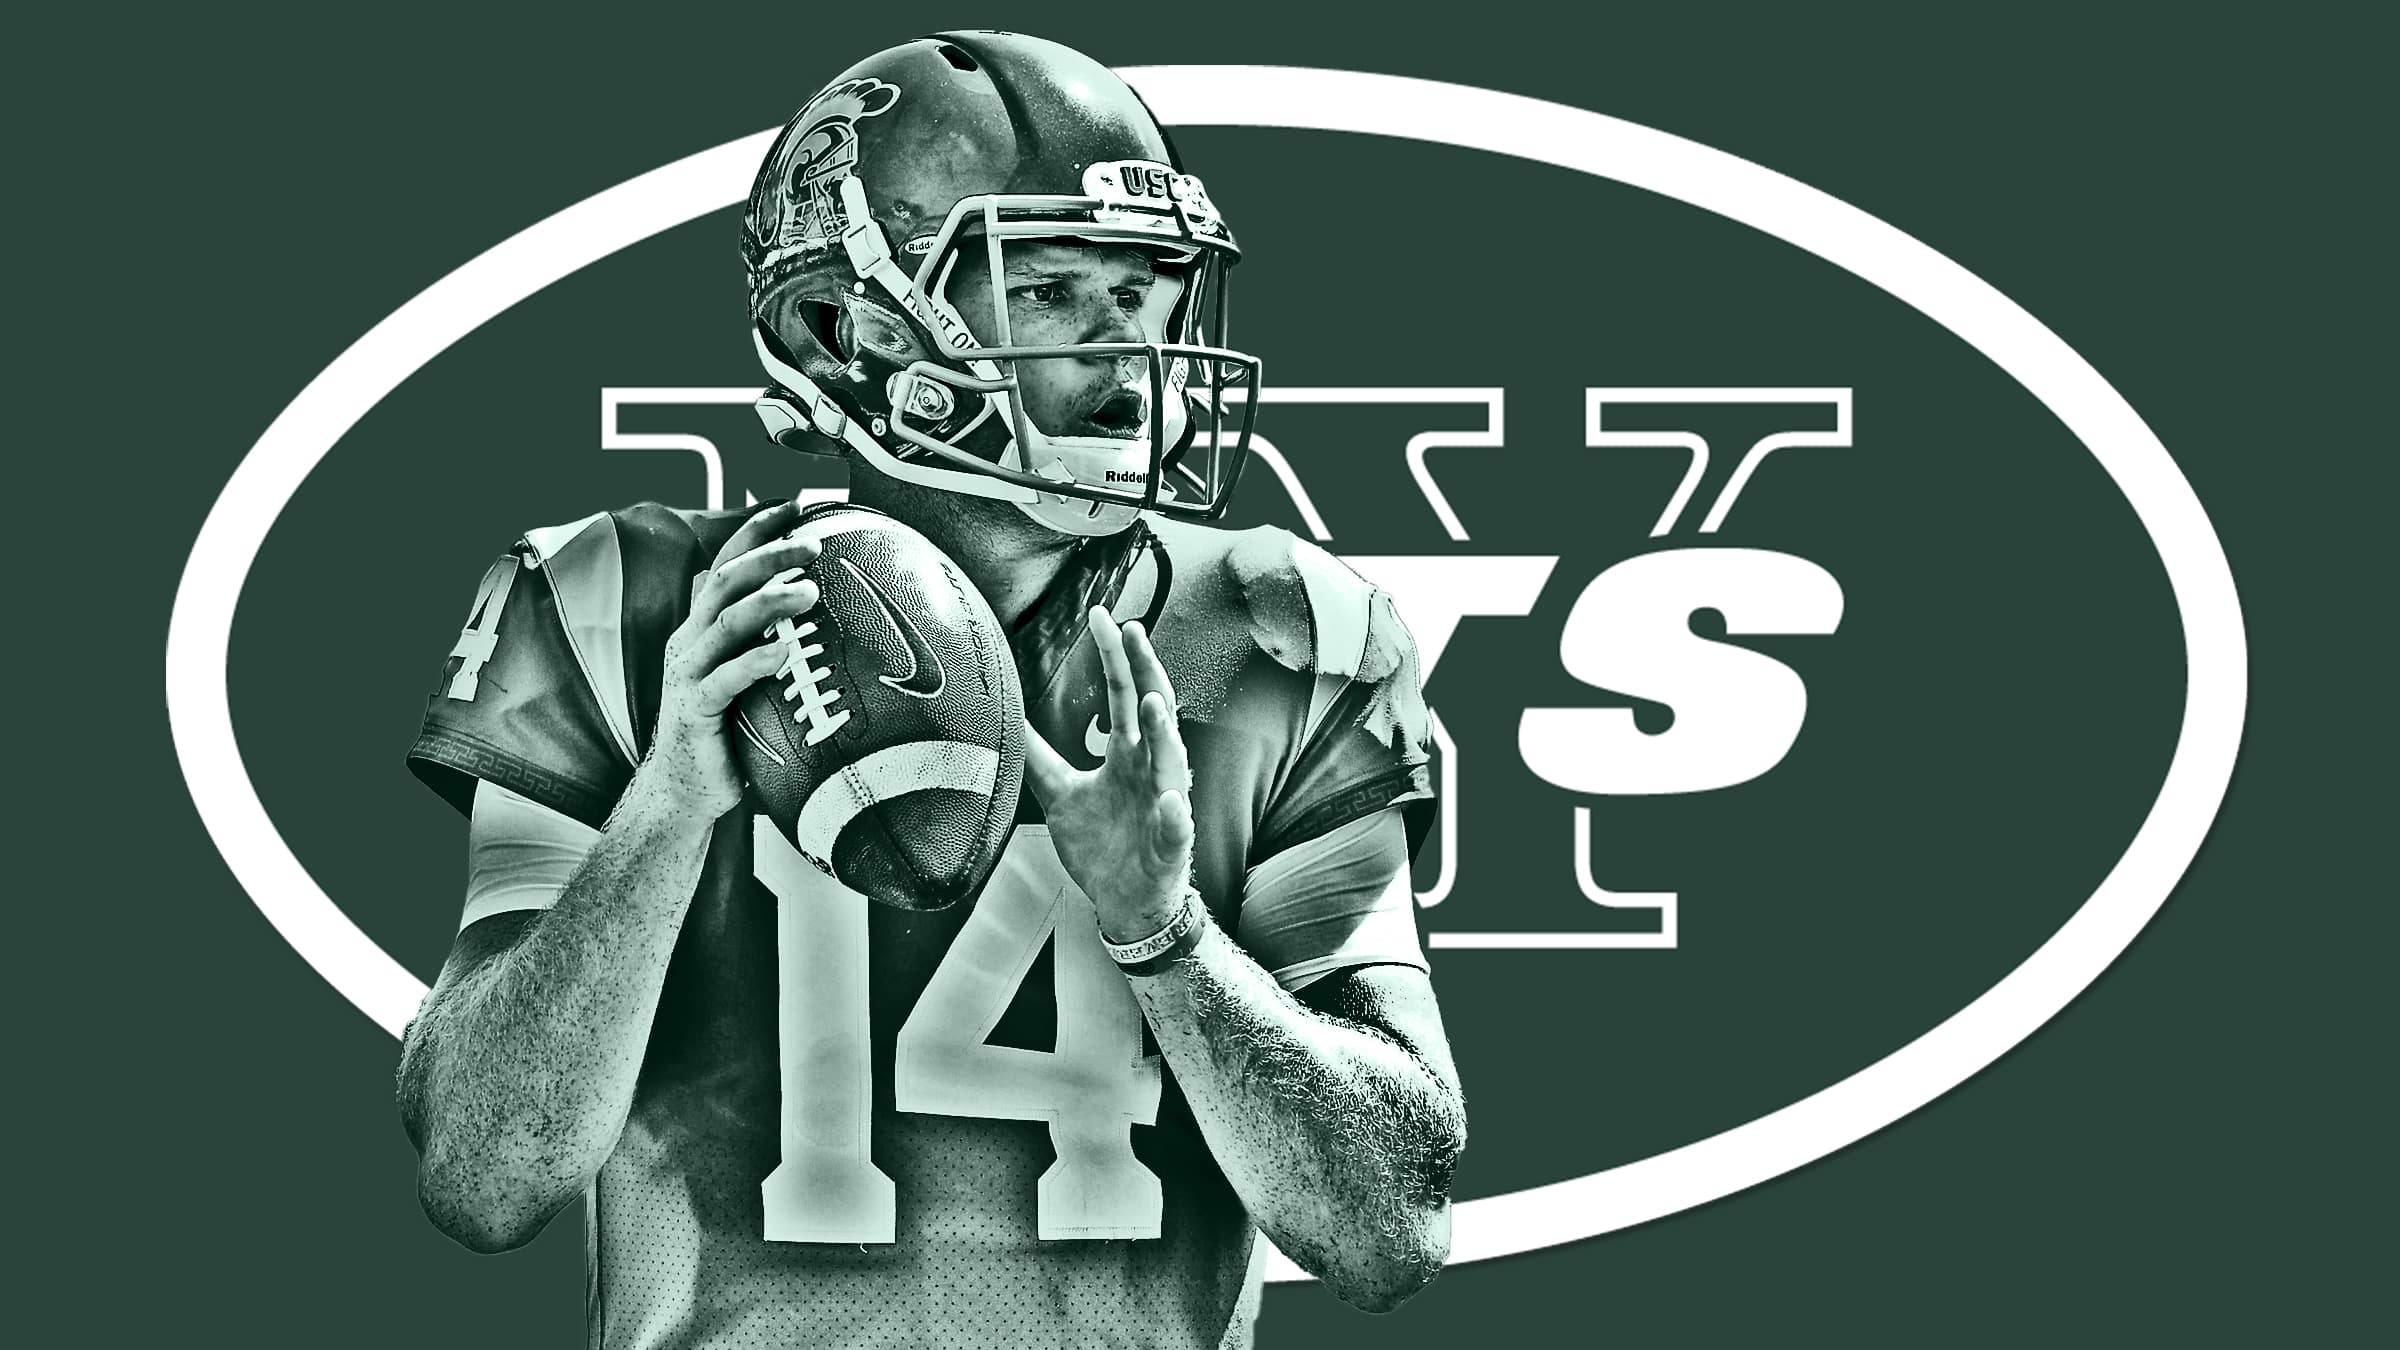 New York Jets select Sam Darnold with